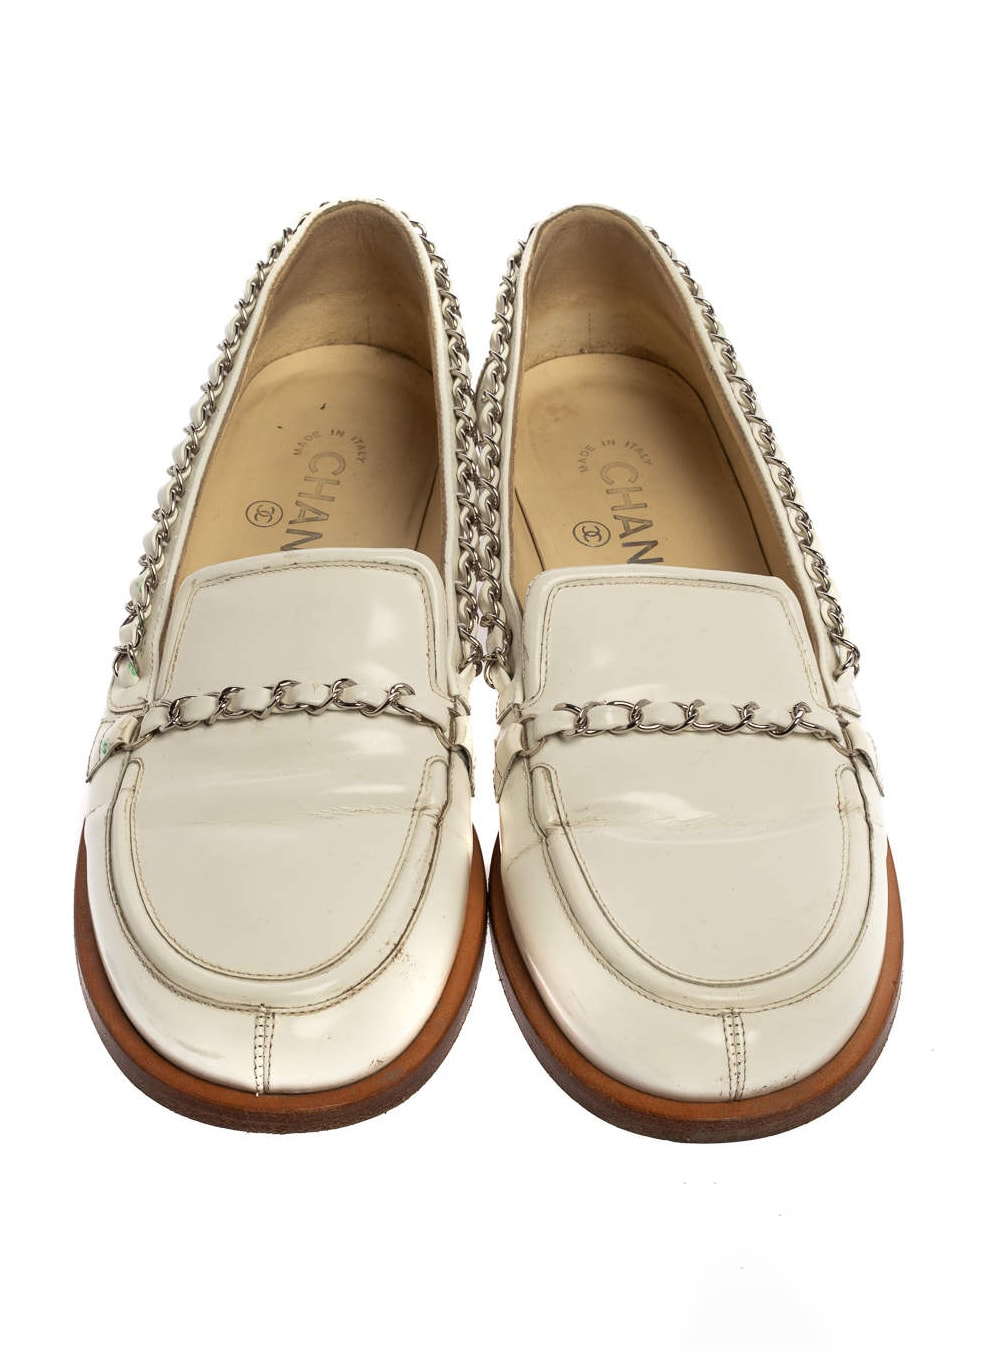 luxury-women-chanel-used-shoes-p405859-007